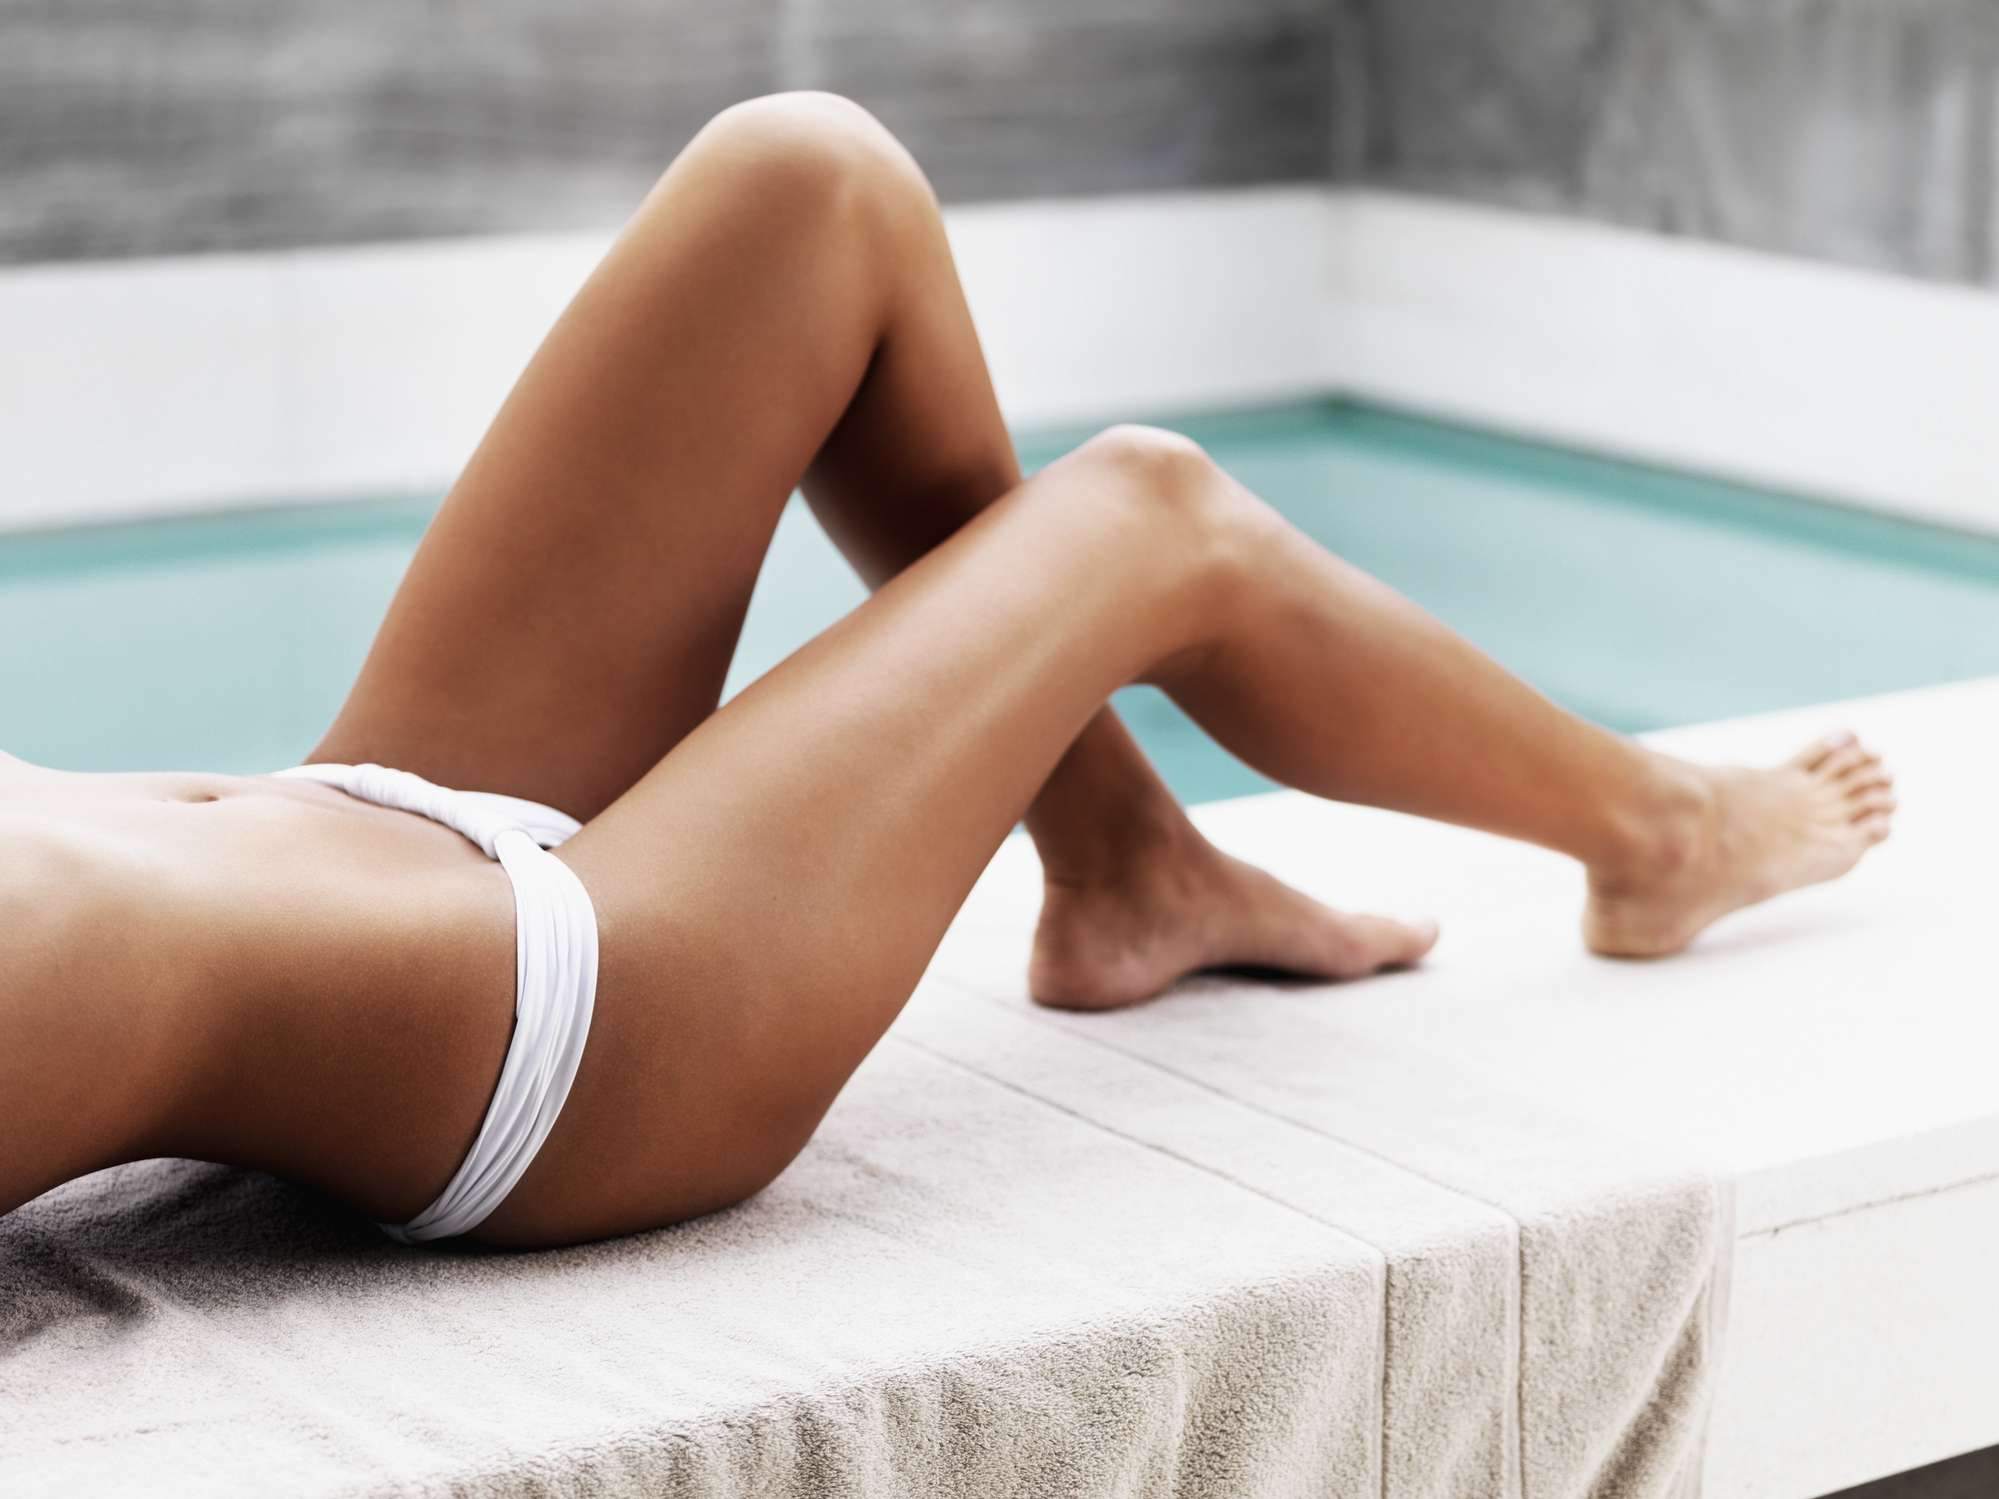 Woman with tanned legs lying by a pool in a bathing suit